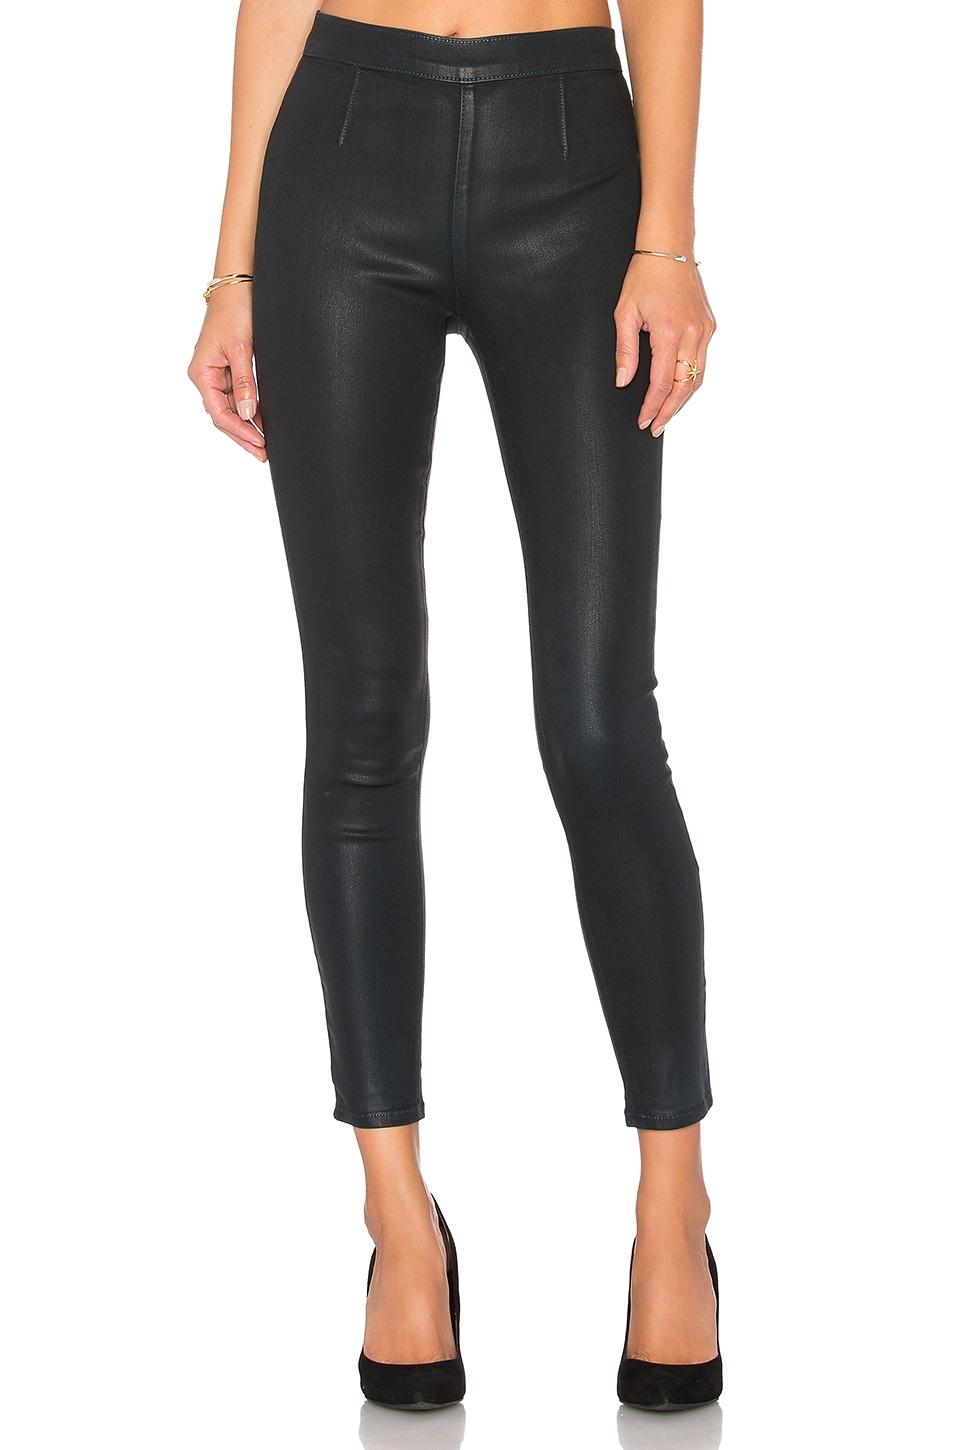 Lovers + Friends Jesse Skinny Legging in Freeman